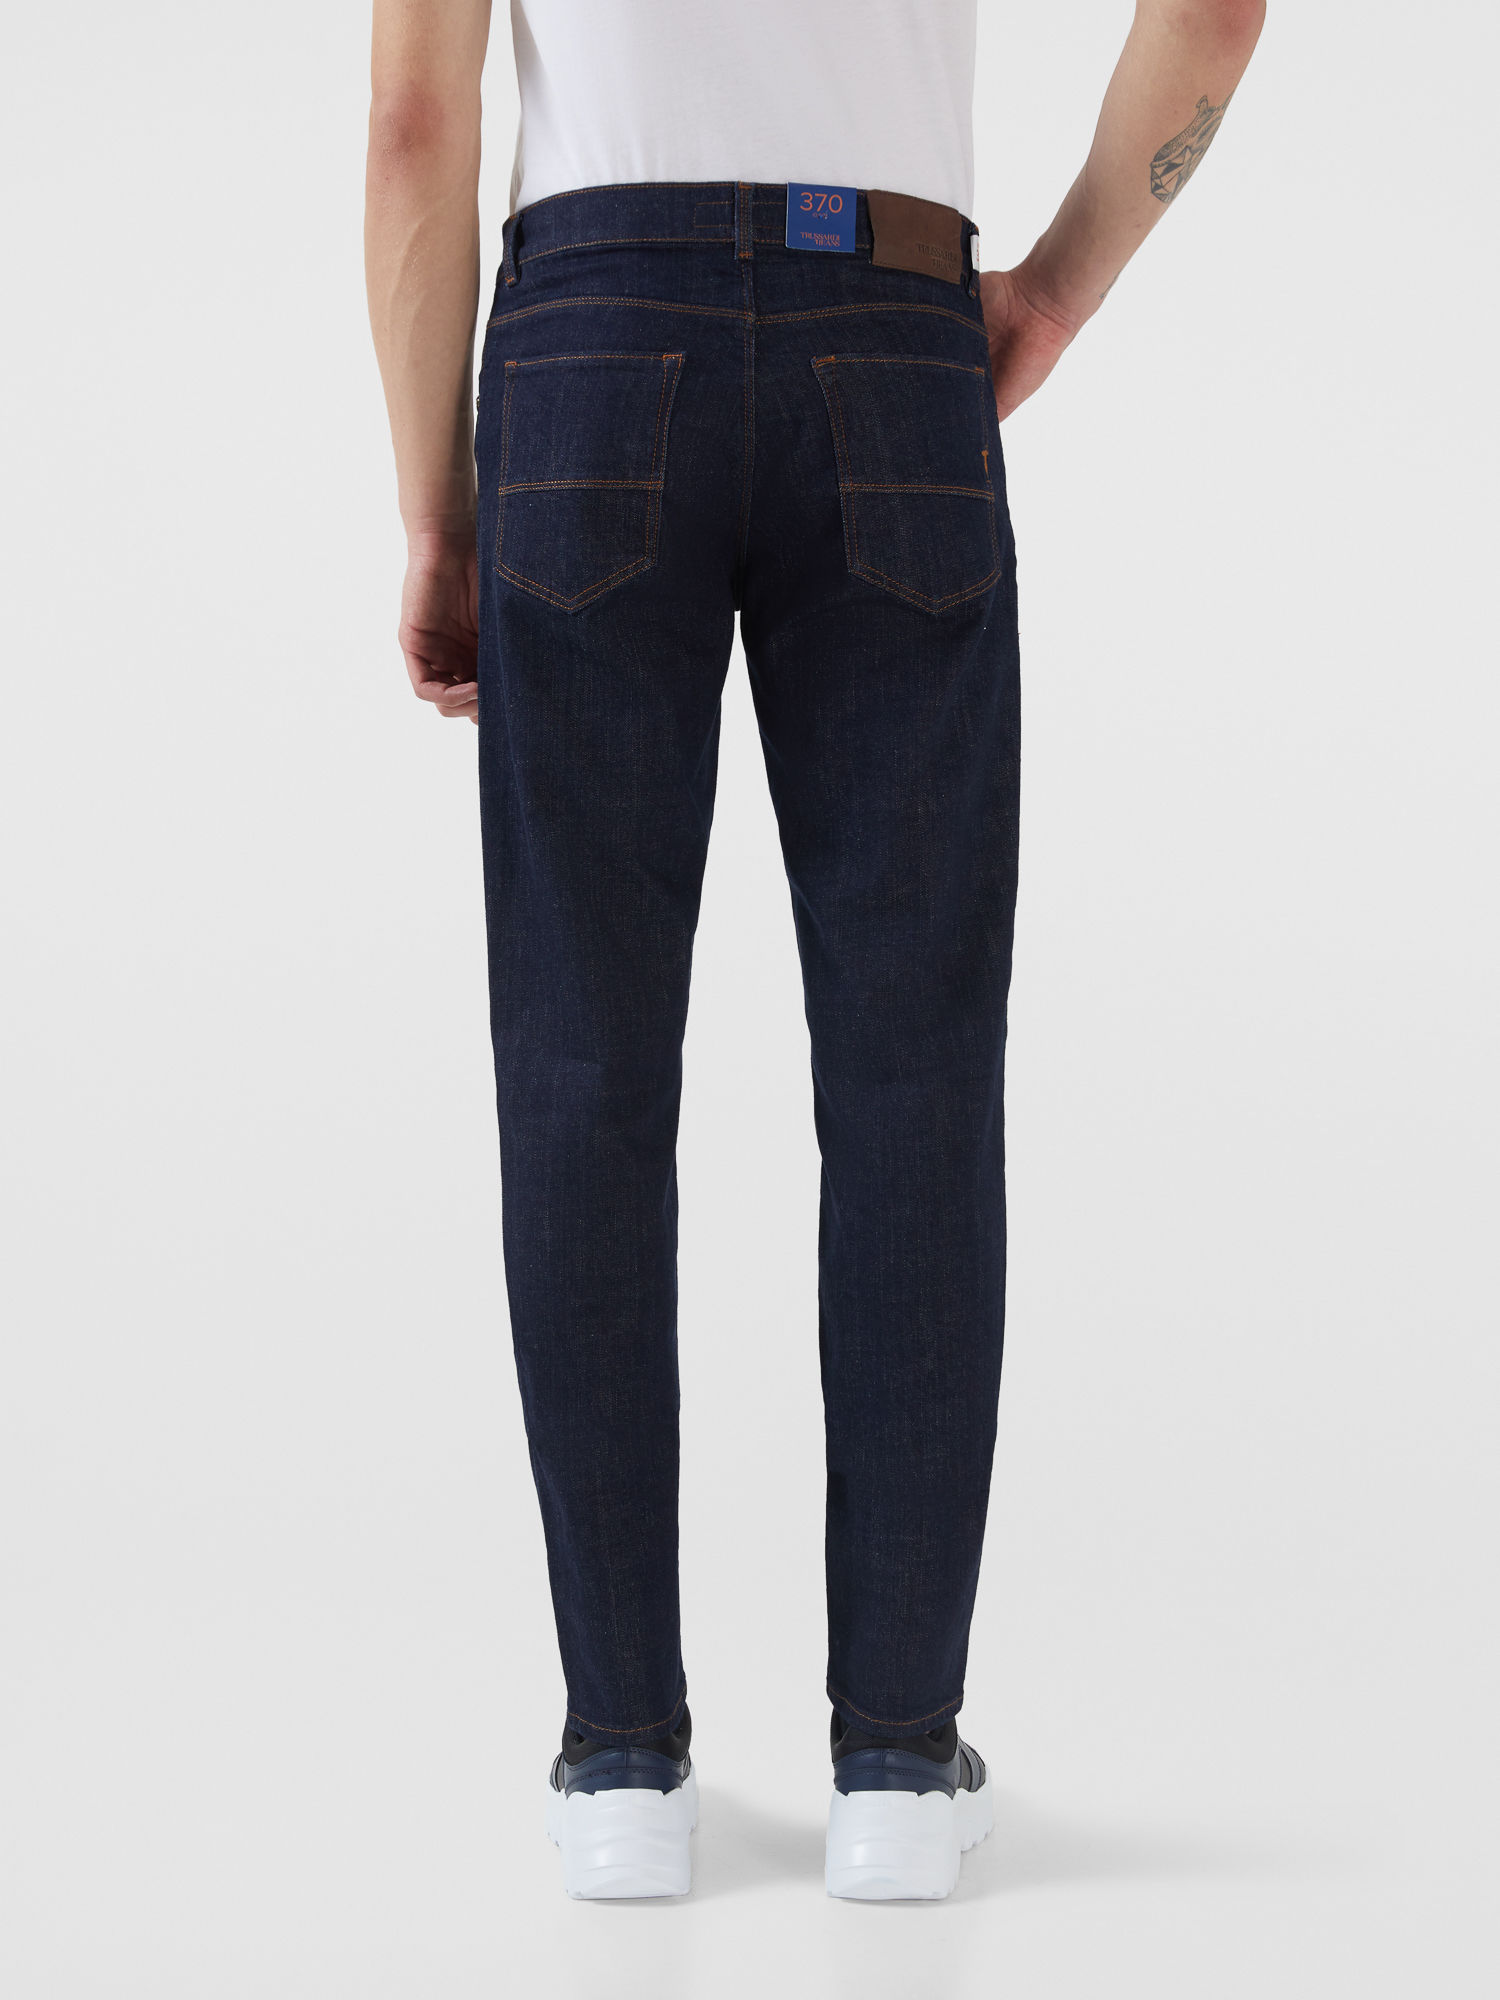 Jeans Trussardi 370 close cairo blue